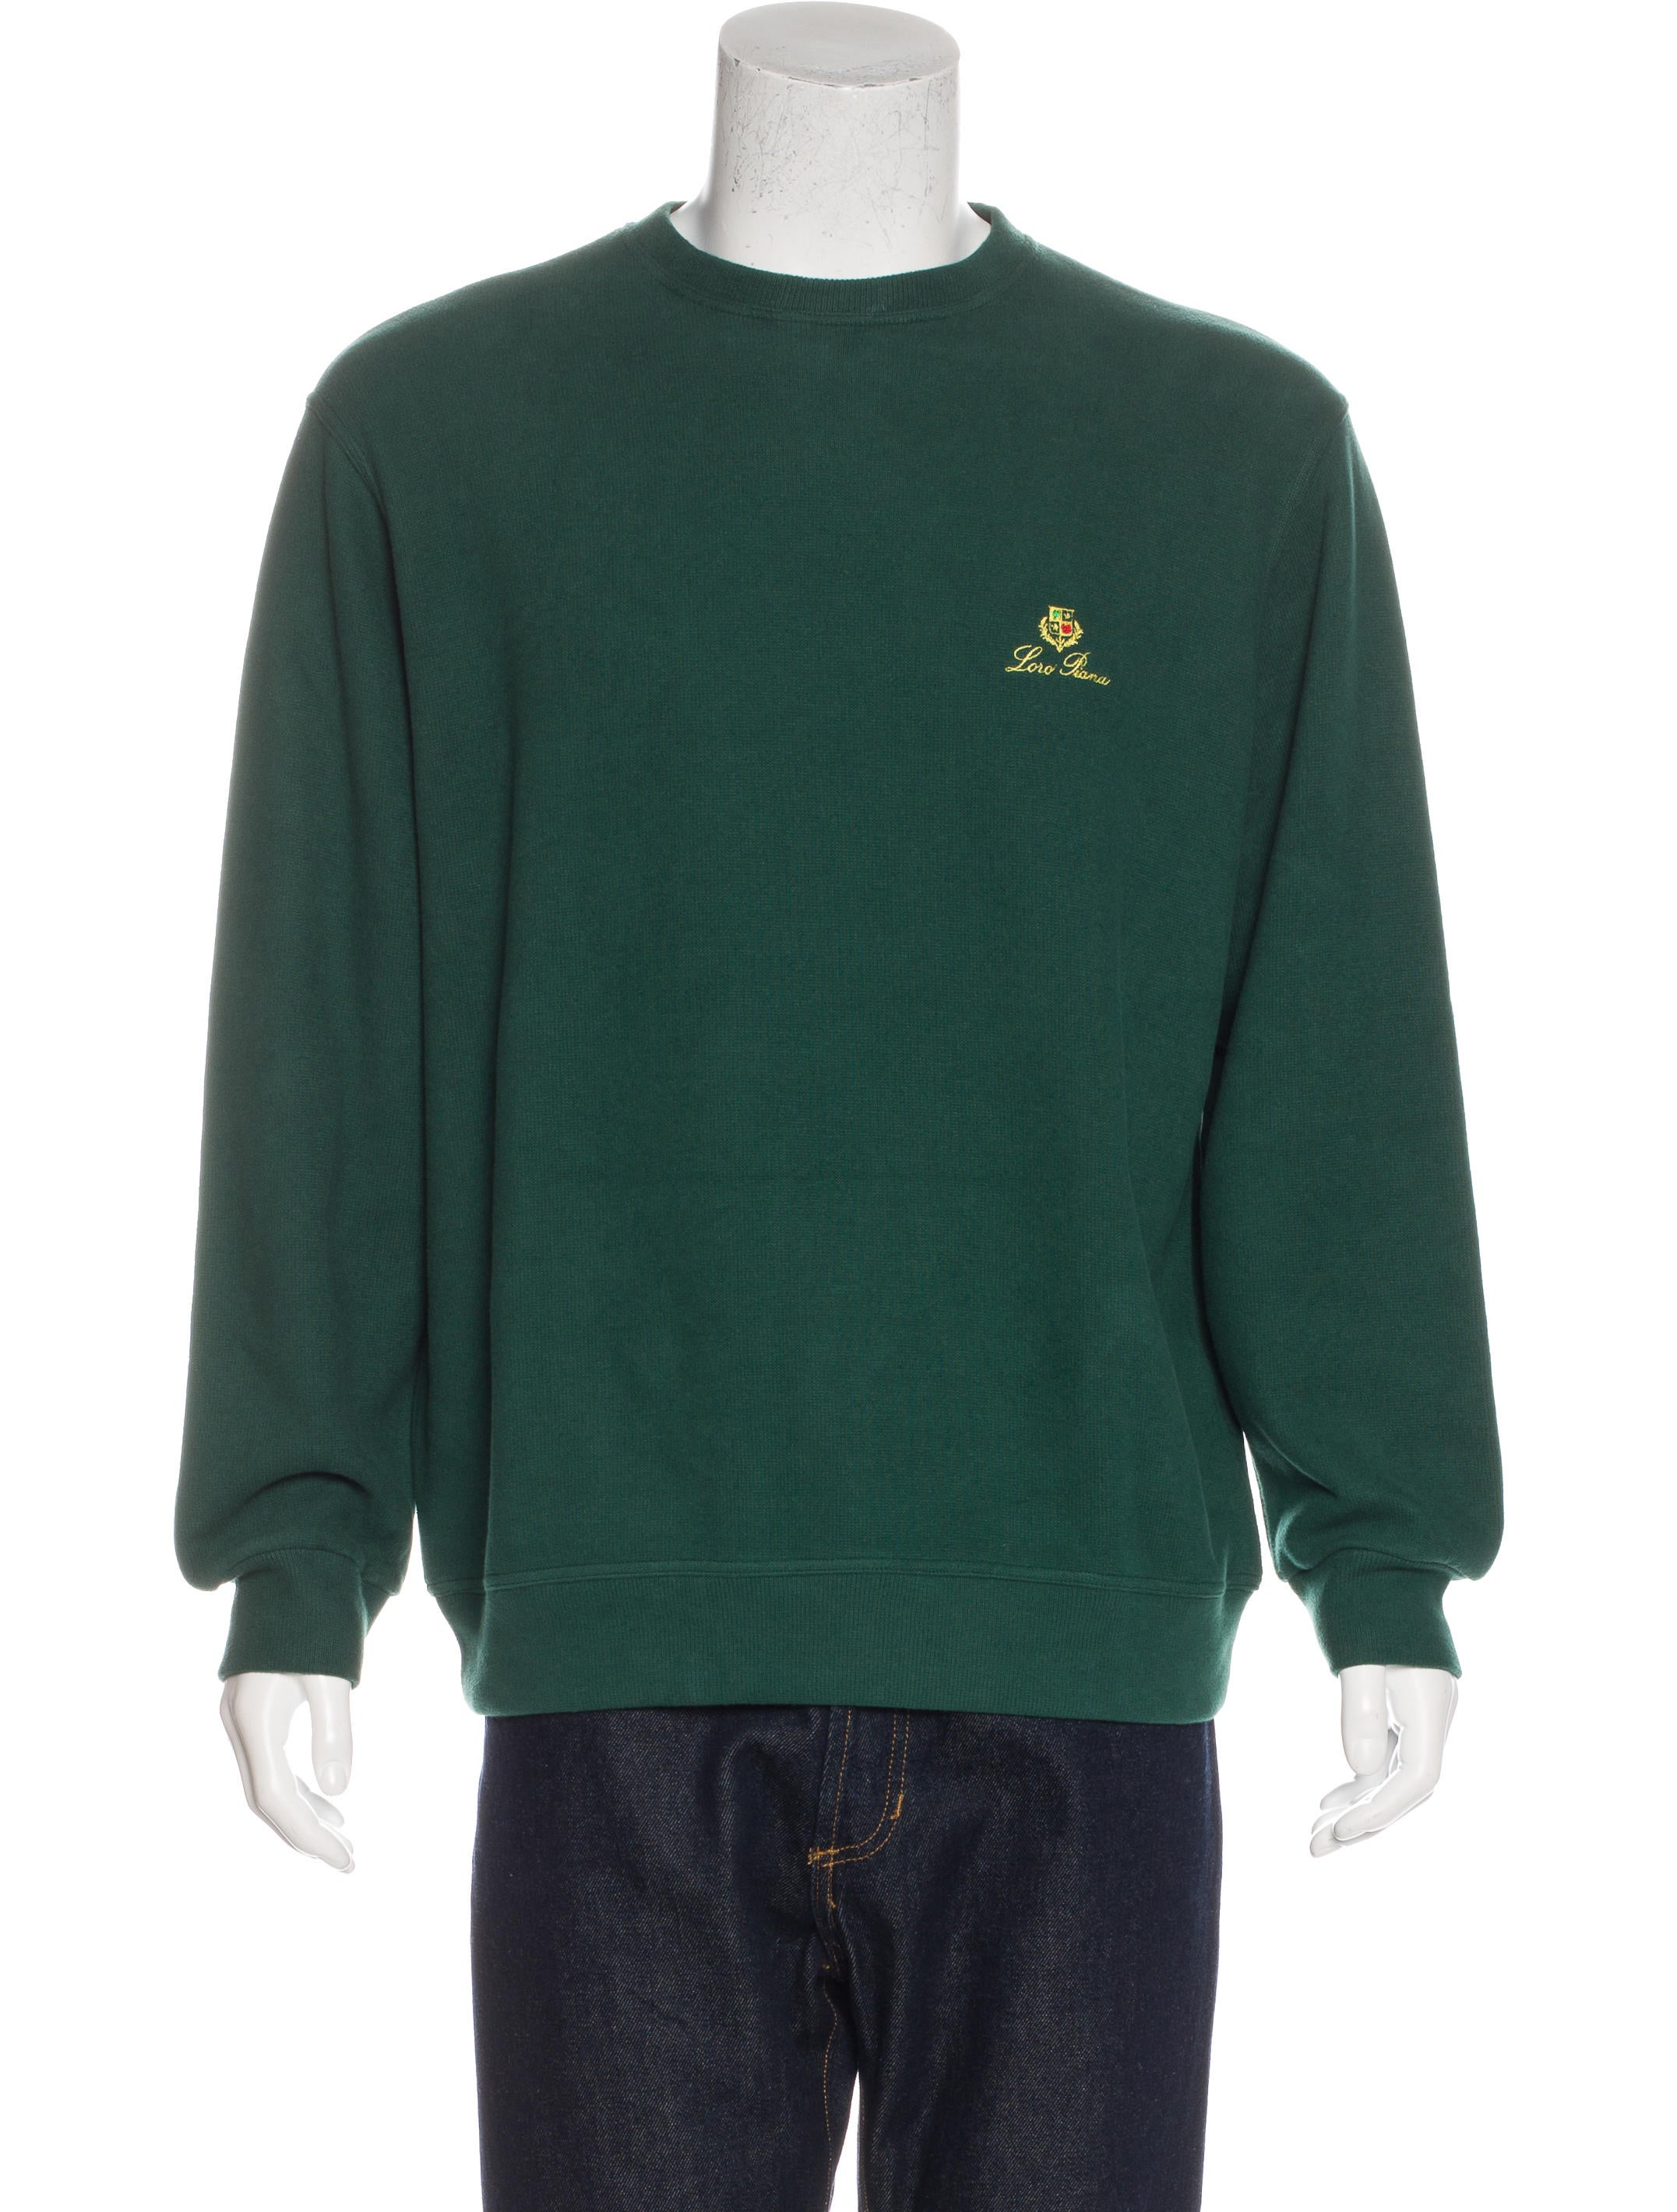 Loro Piana College Embroidered Sweatshirt w/ Tags - Clothing - LOR35502 | The RealReal